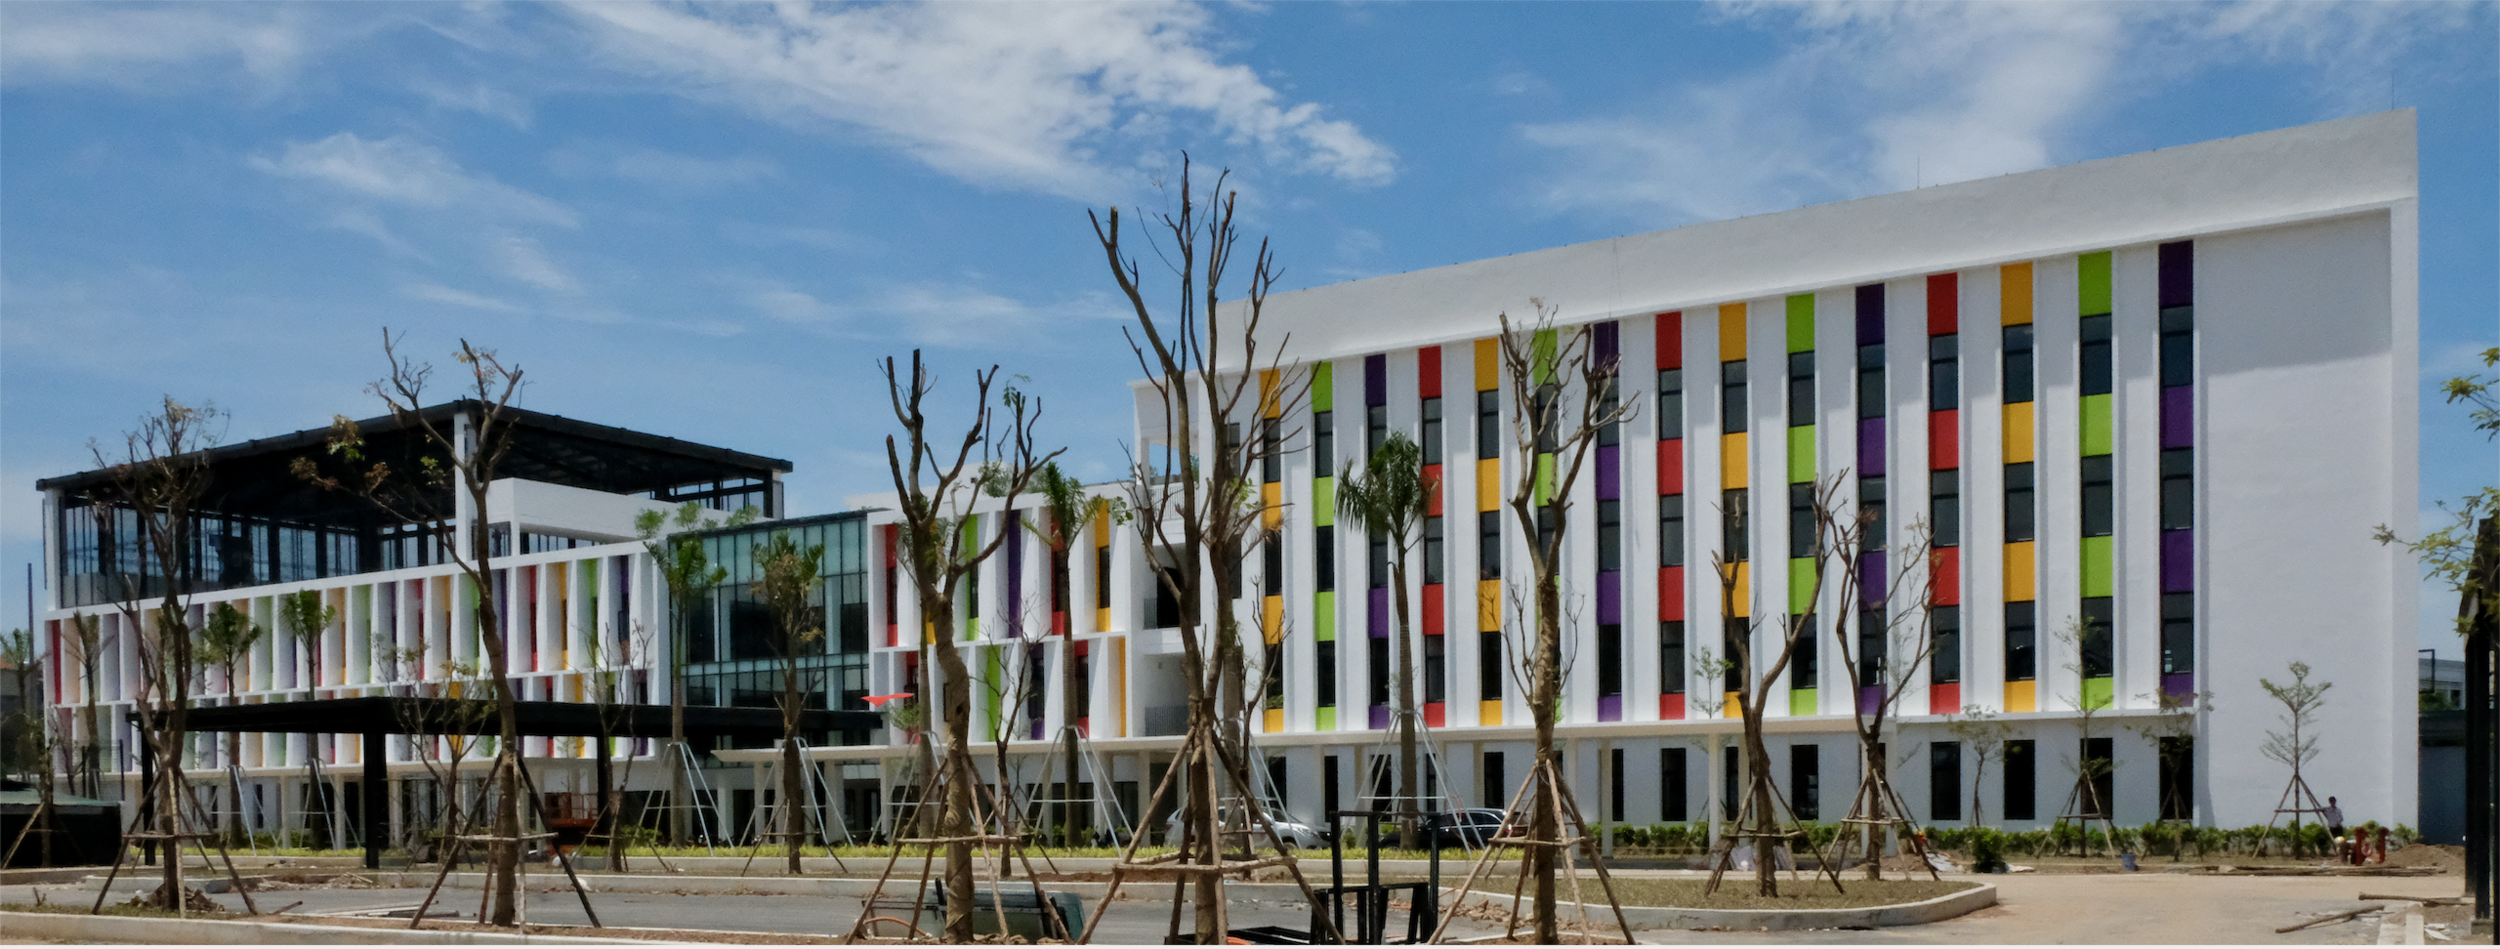 ISPH Campus - main building and newly planted trees - 5th June 2019